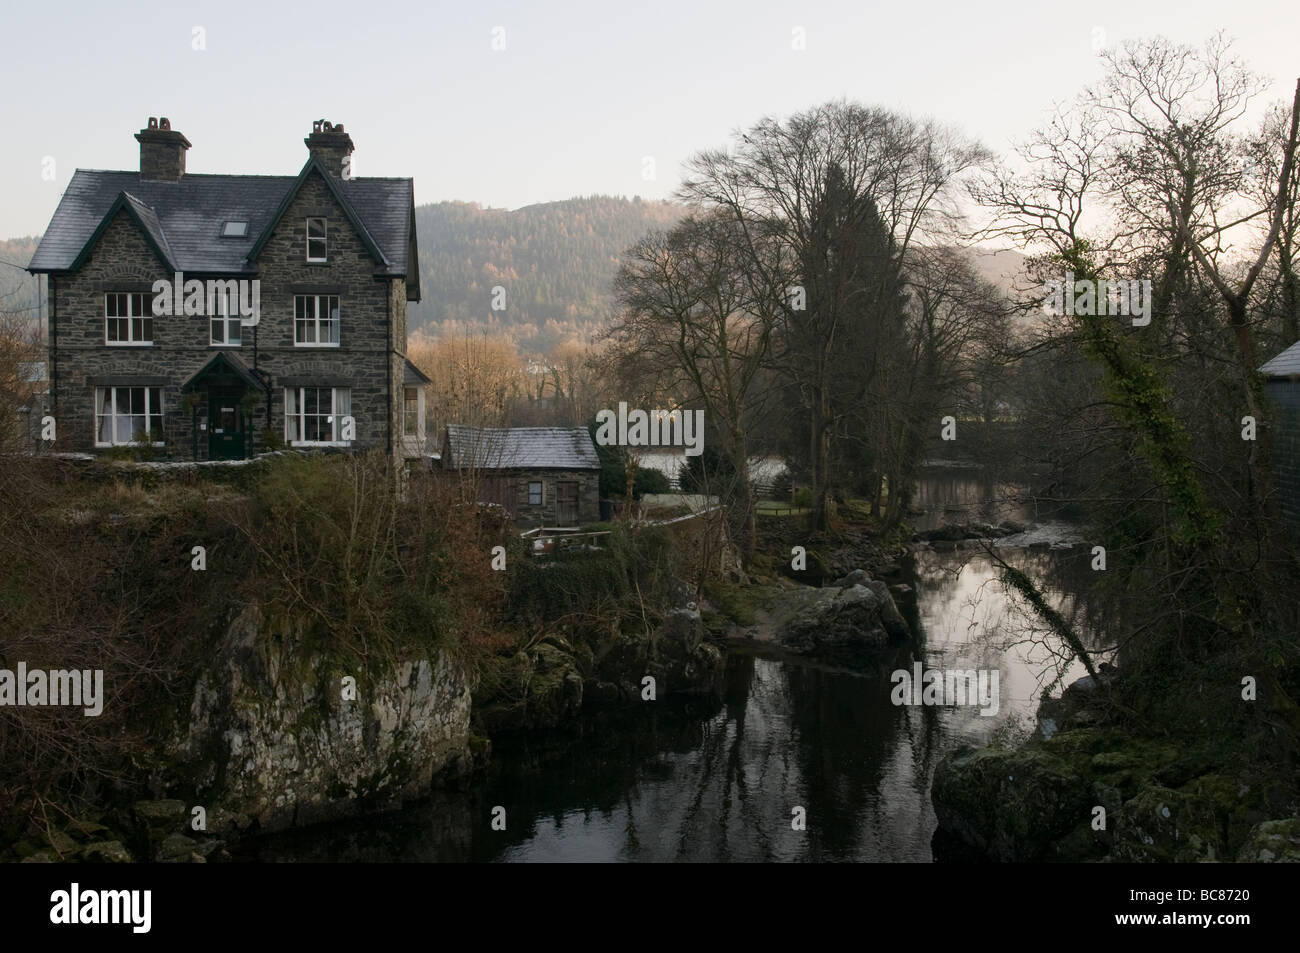 An unlit house by a river in Wales. - Stock Image